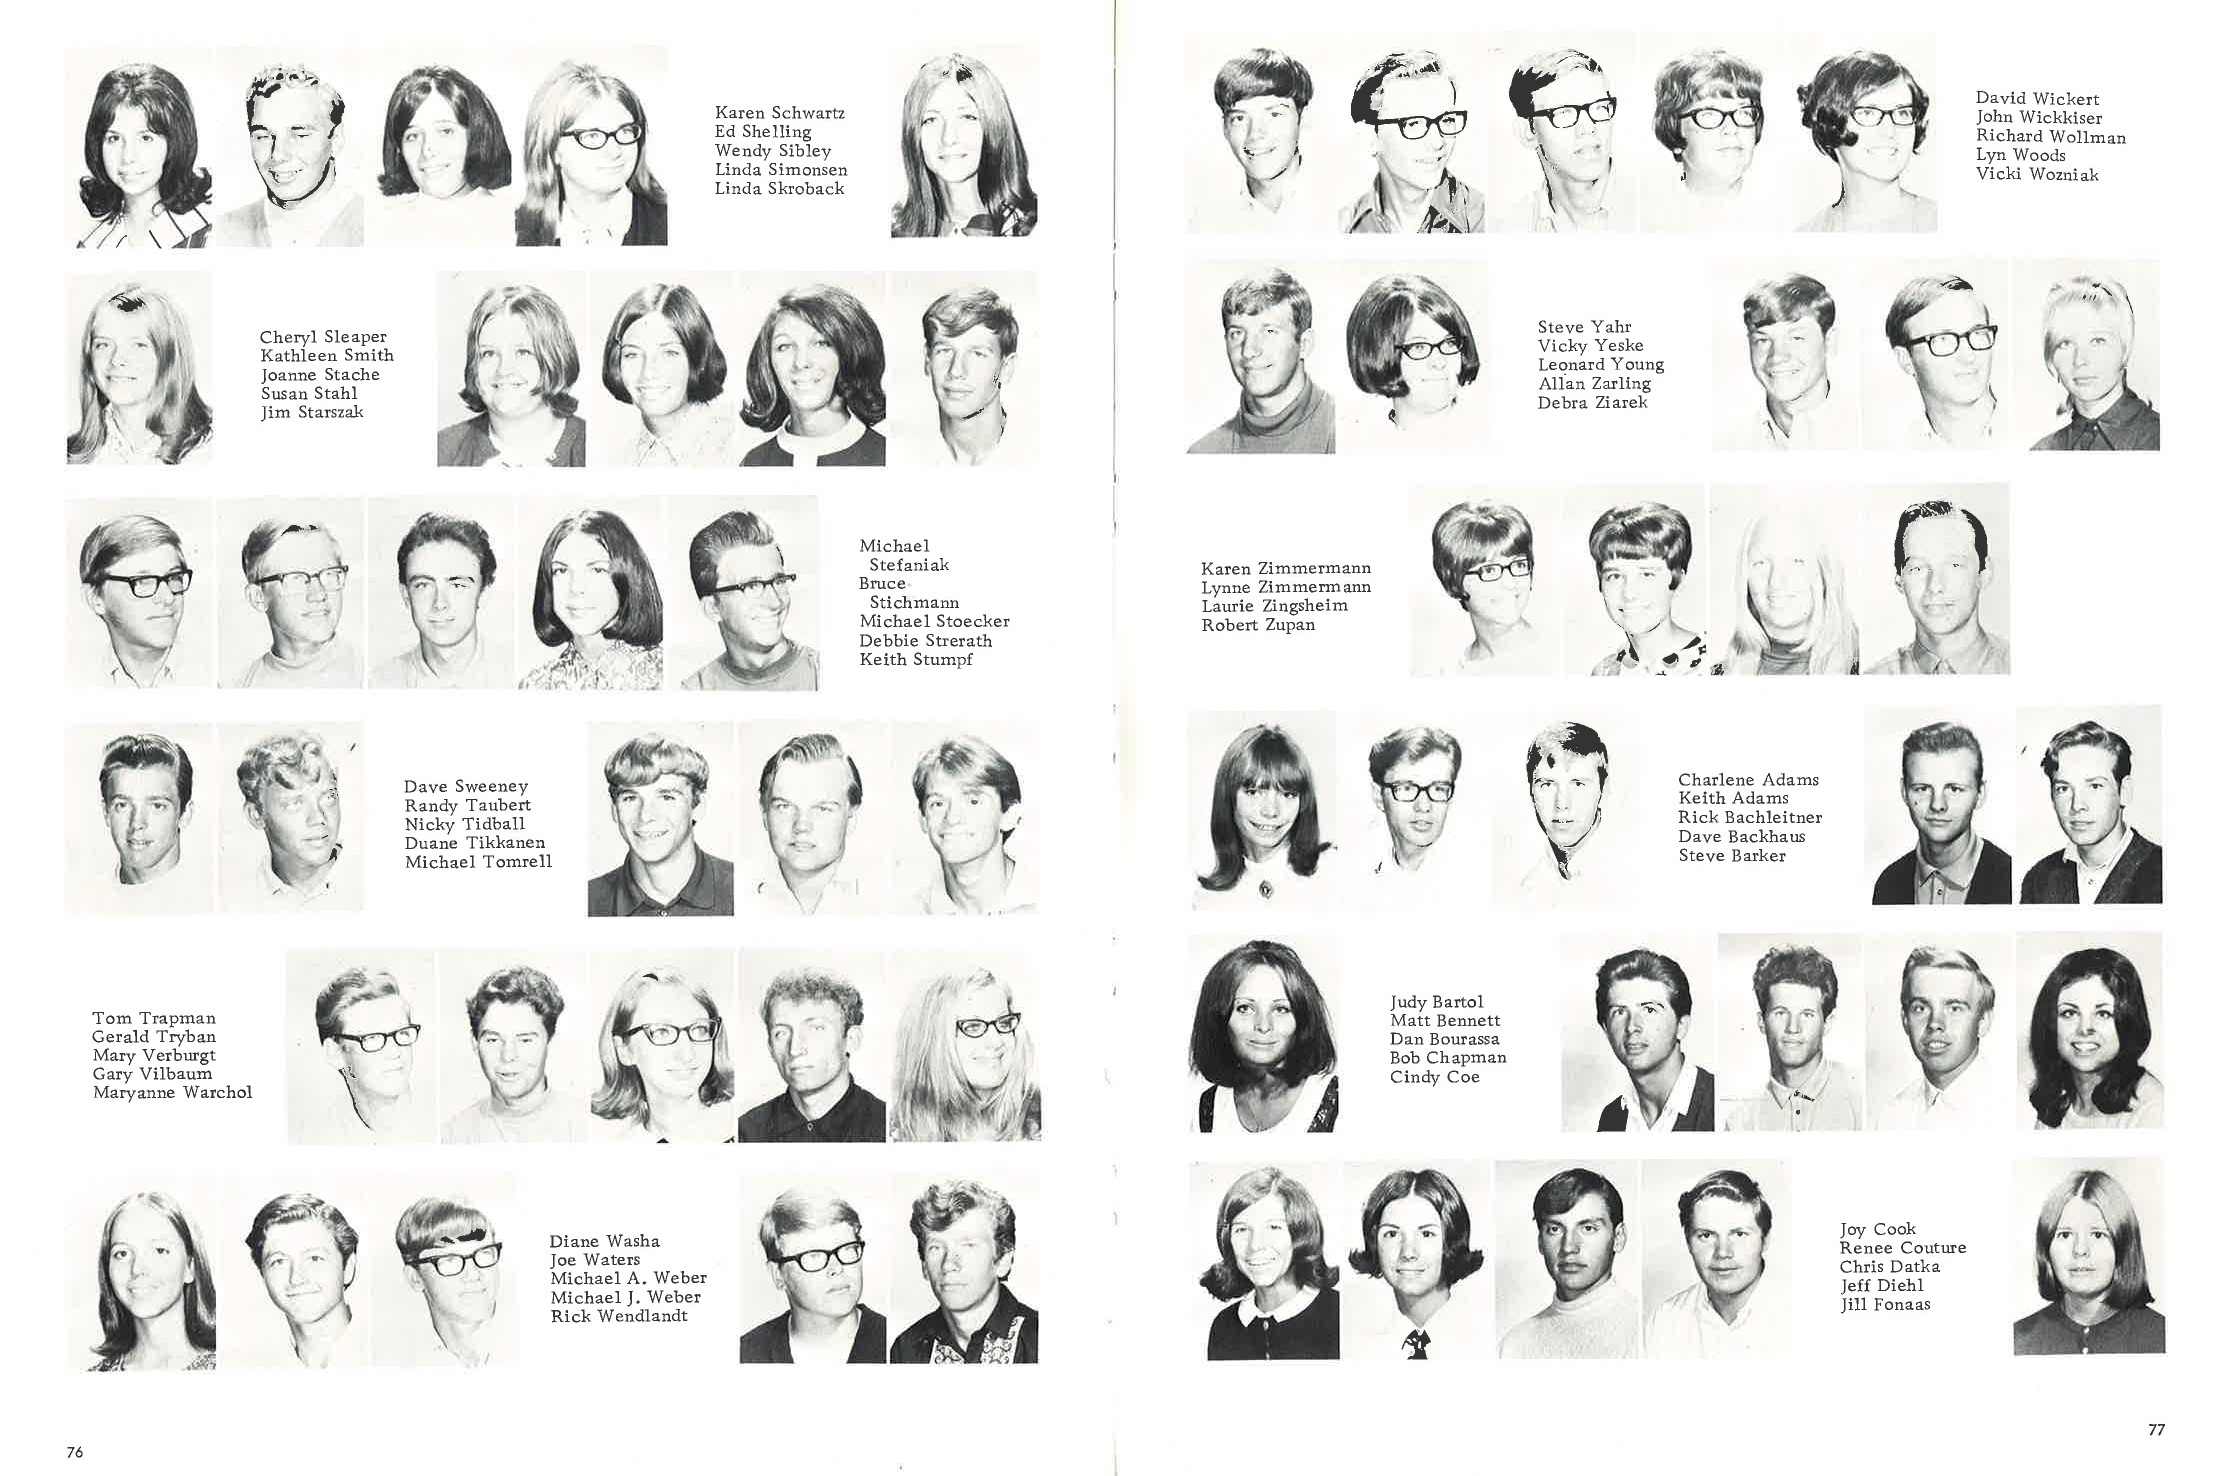 1970_Yearbook_76-77.jpg